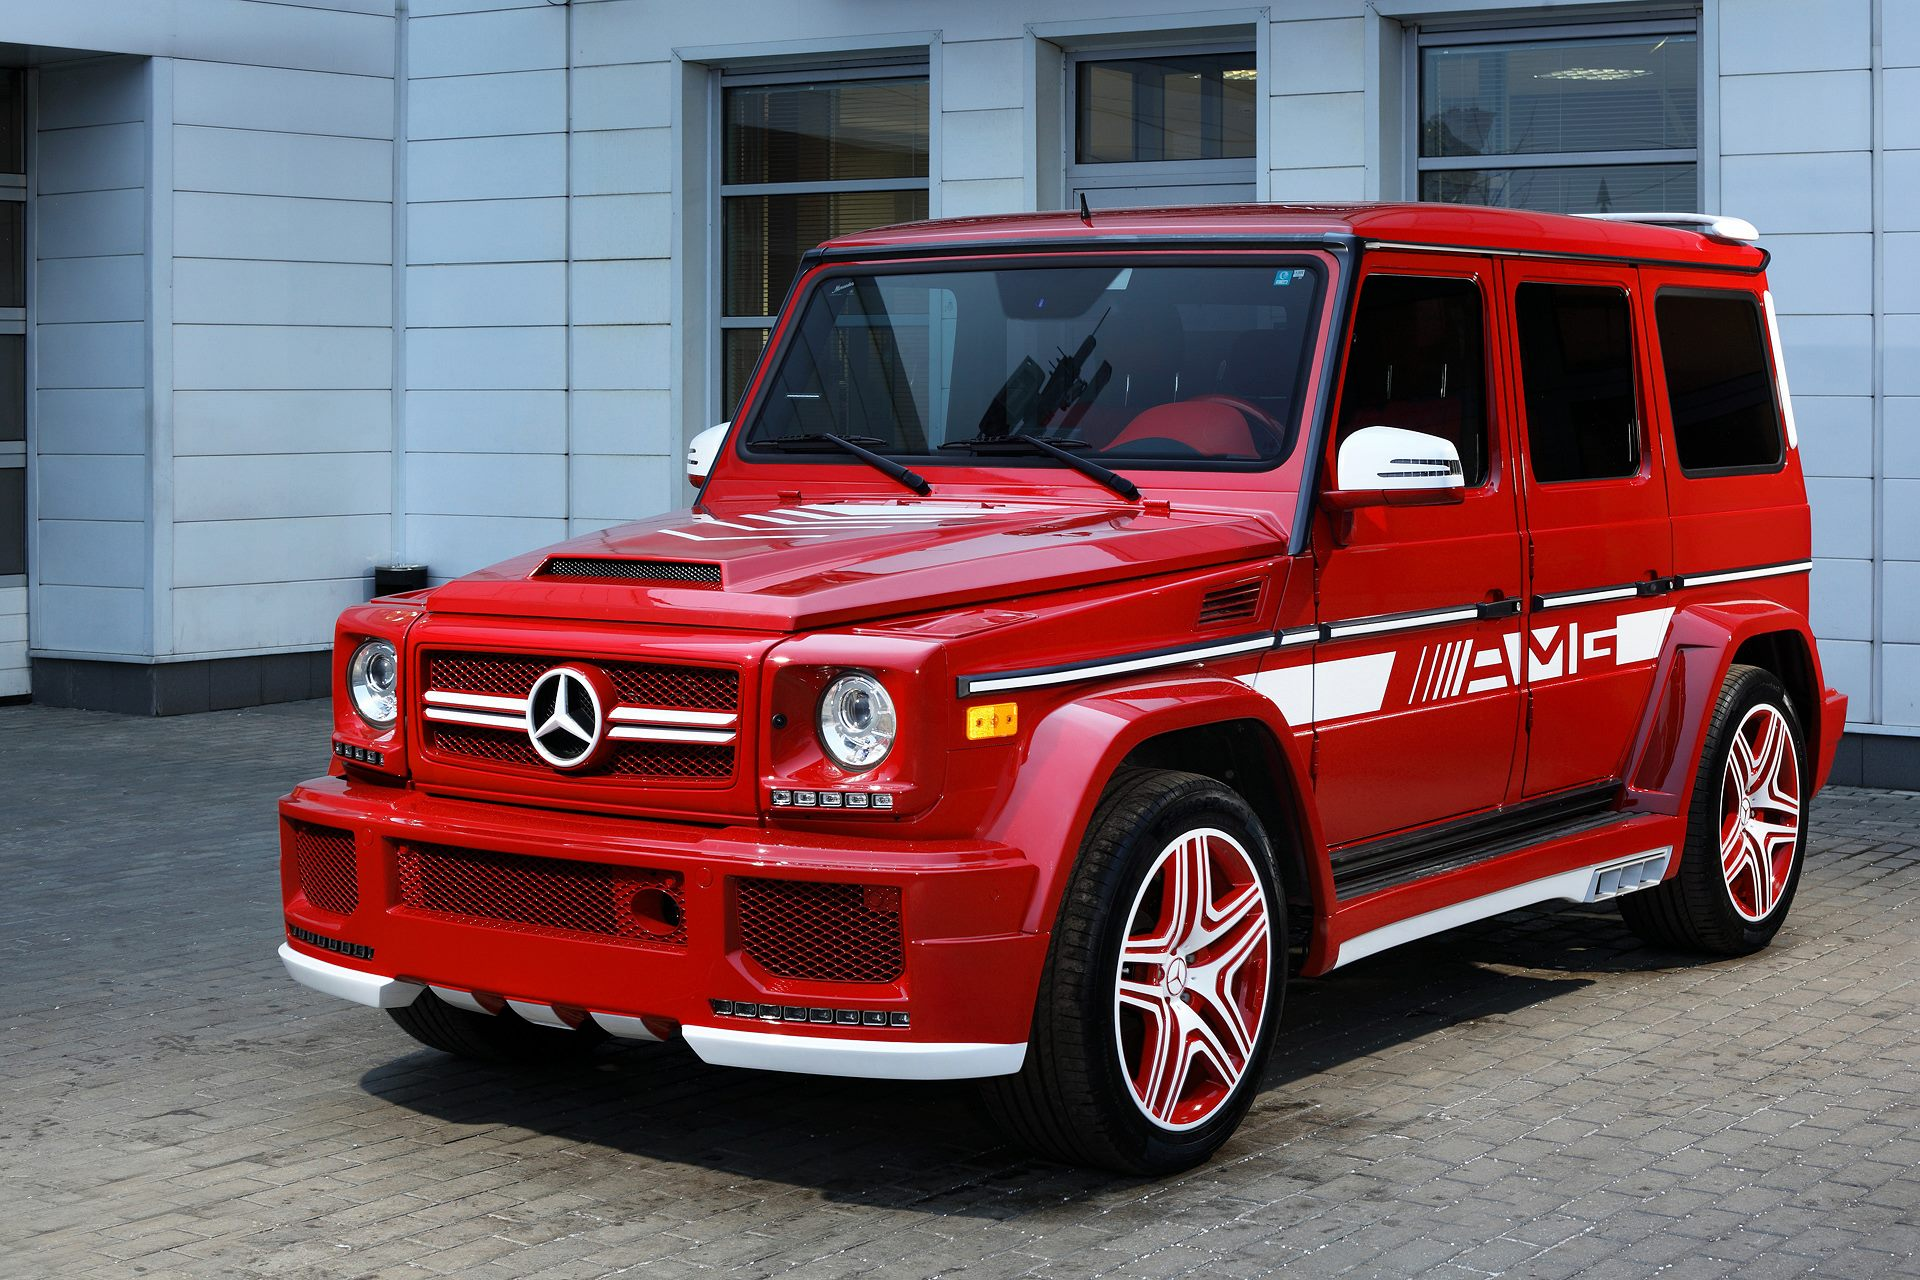 g63 amg with hamann body kit and topcar interior is a red